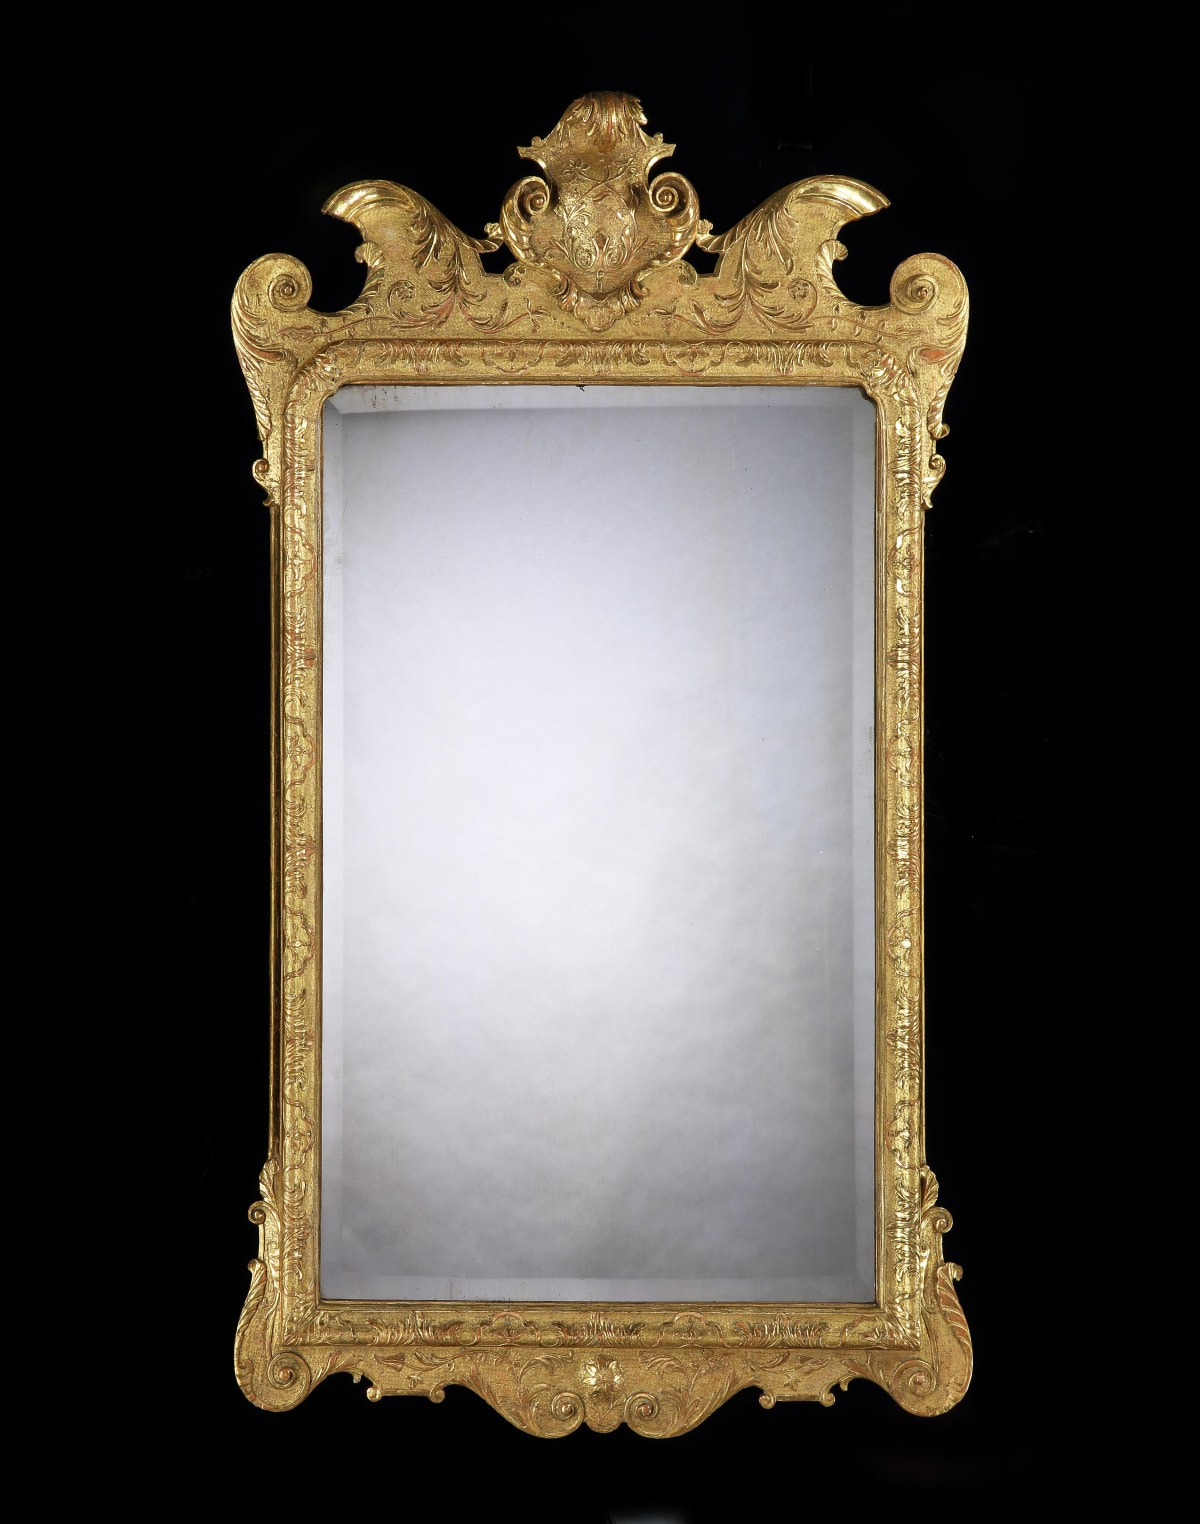 A GEORGE I GILTWOOD GESSO MIRROR, ENGLISH, CIRCA 1725